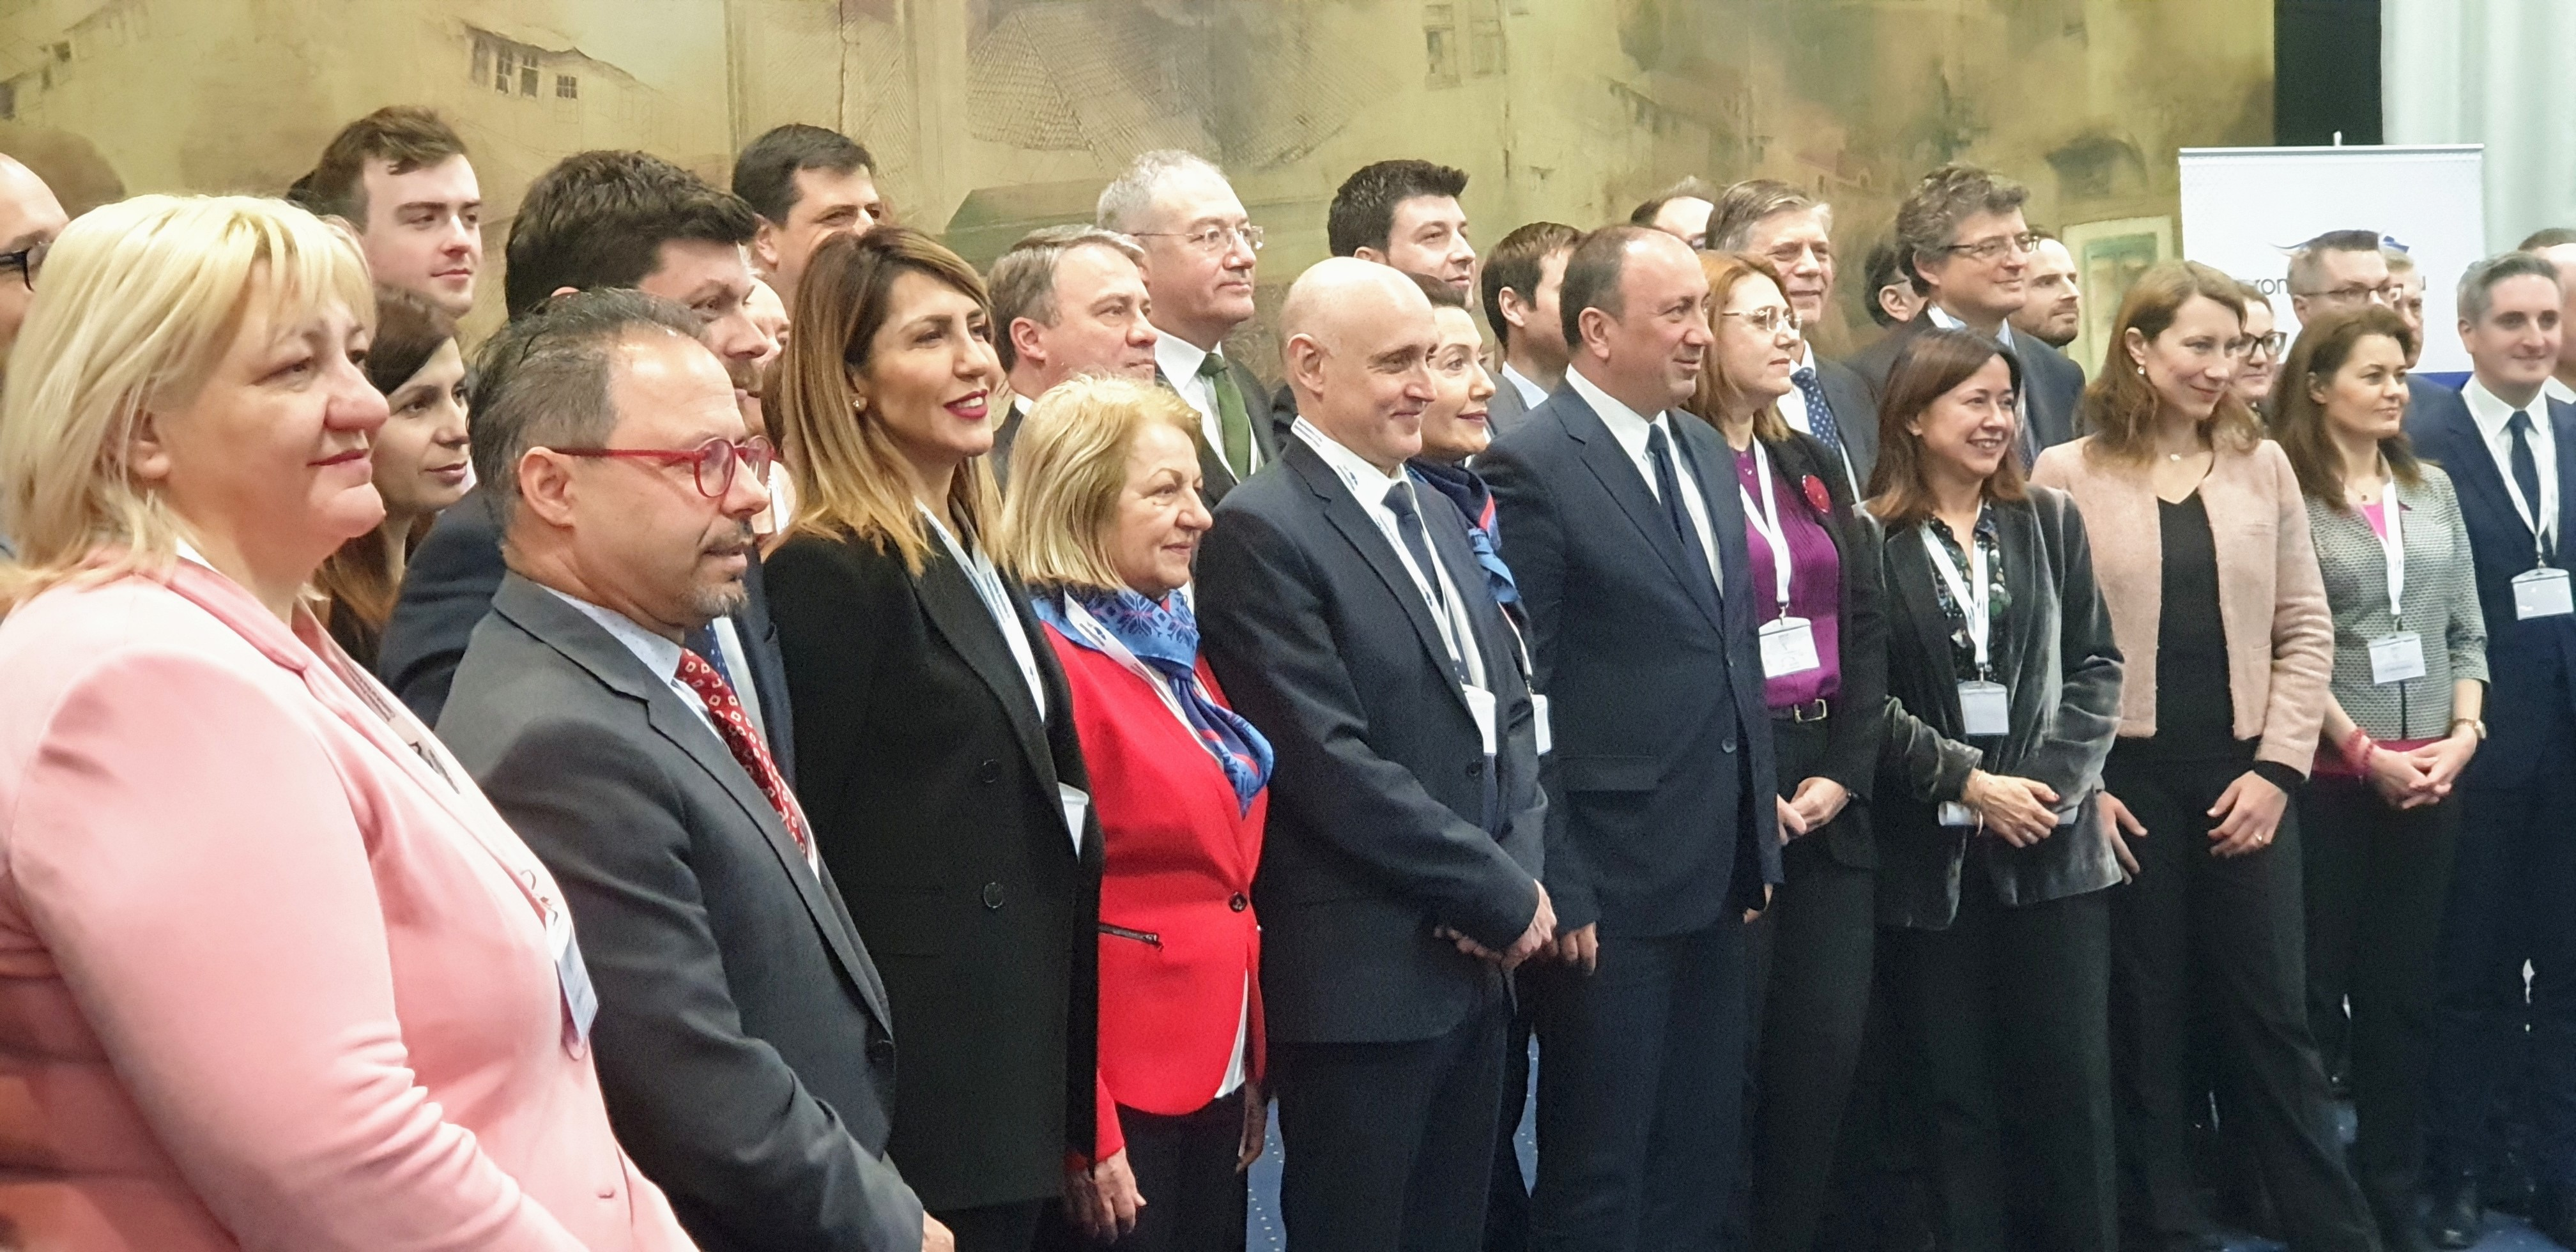 The informal meeting of the Working Party on the Western Balkans Region (COWEB) convened by the Romanian Presidency of the Council of the European Union (EU), in cooperation with the South East European Cooperation Process (SEECP) Chairmanship-in-Office (CiO) held by Bosnia and Herzegovina, held in Sarajevo on 22 March 2019  (Photo: RCC/Alma Arslanagic-Pozder)